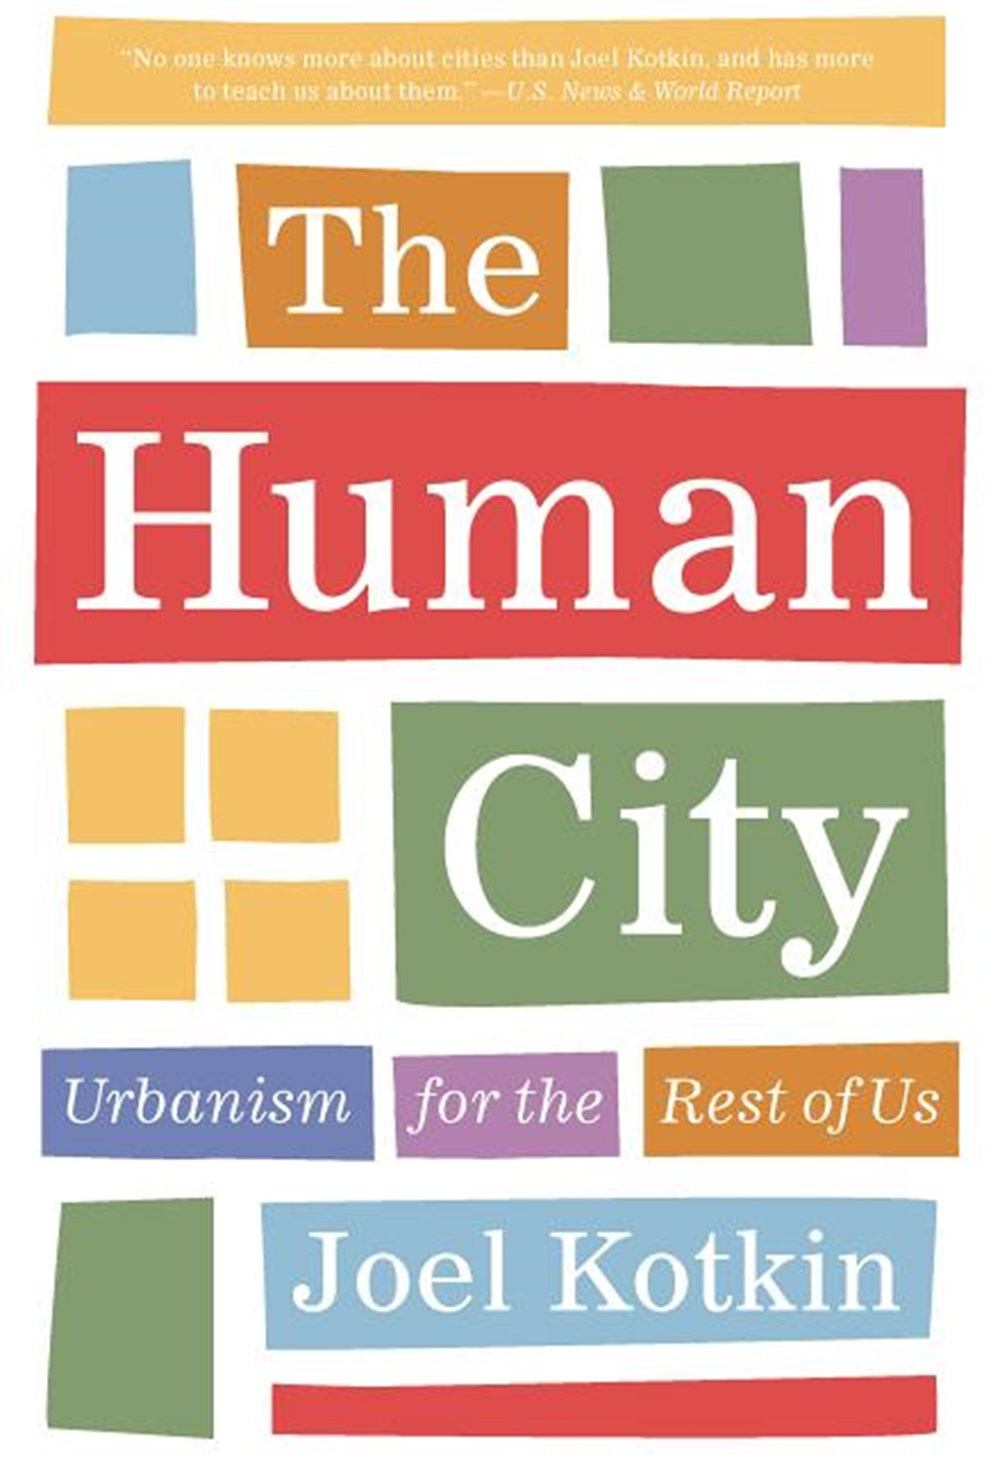 Human City Urbanism for the Rest of Us